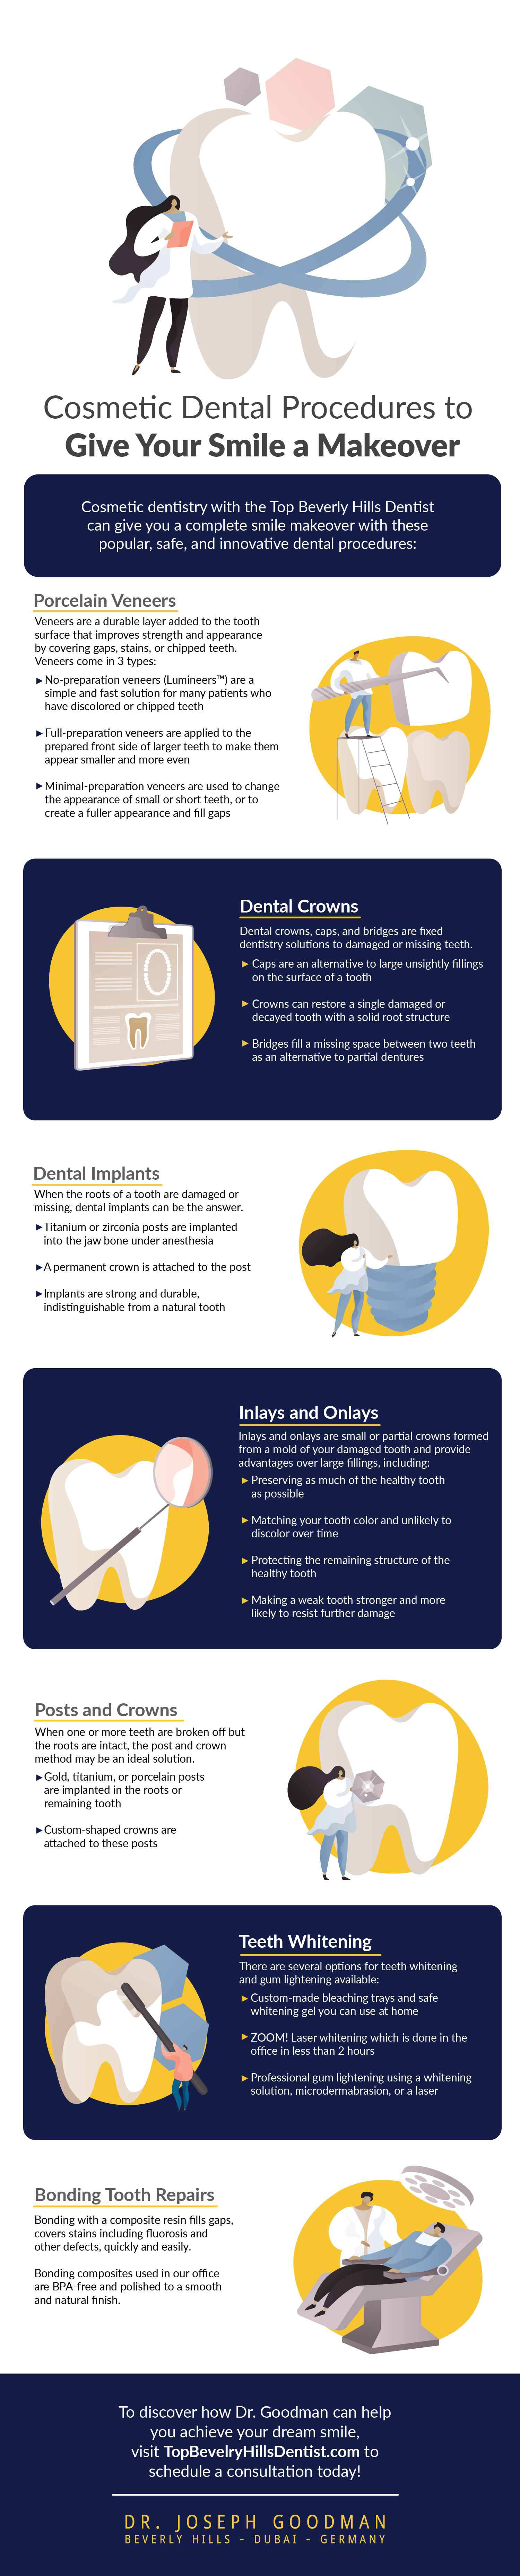 An infographic from Top Beverly Hills Dentist on common cosmetic dental procedures to give your smile a makeover.